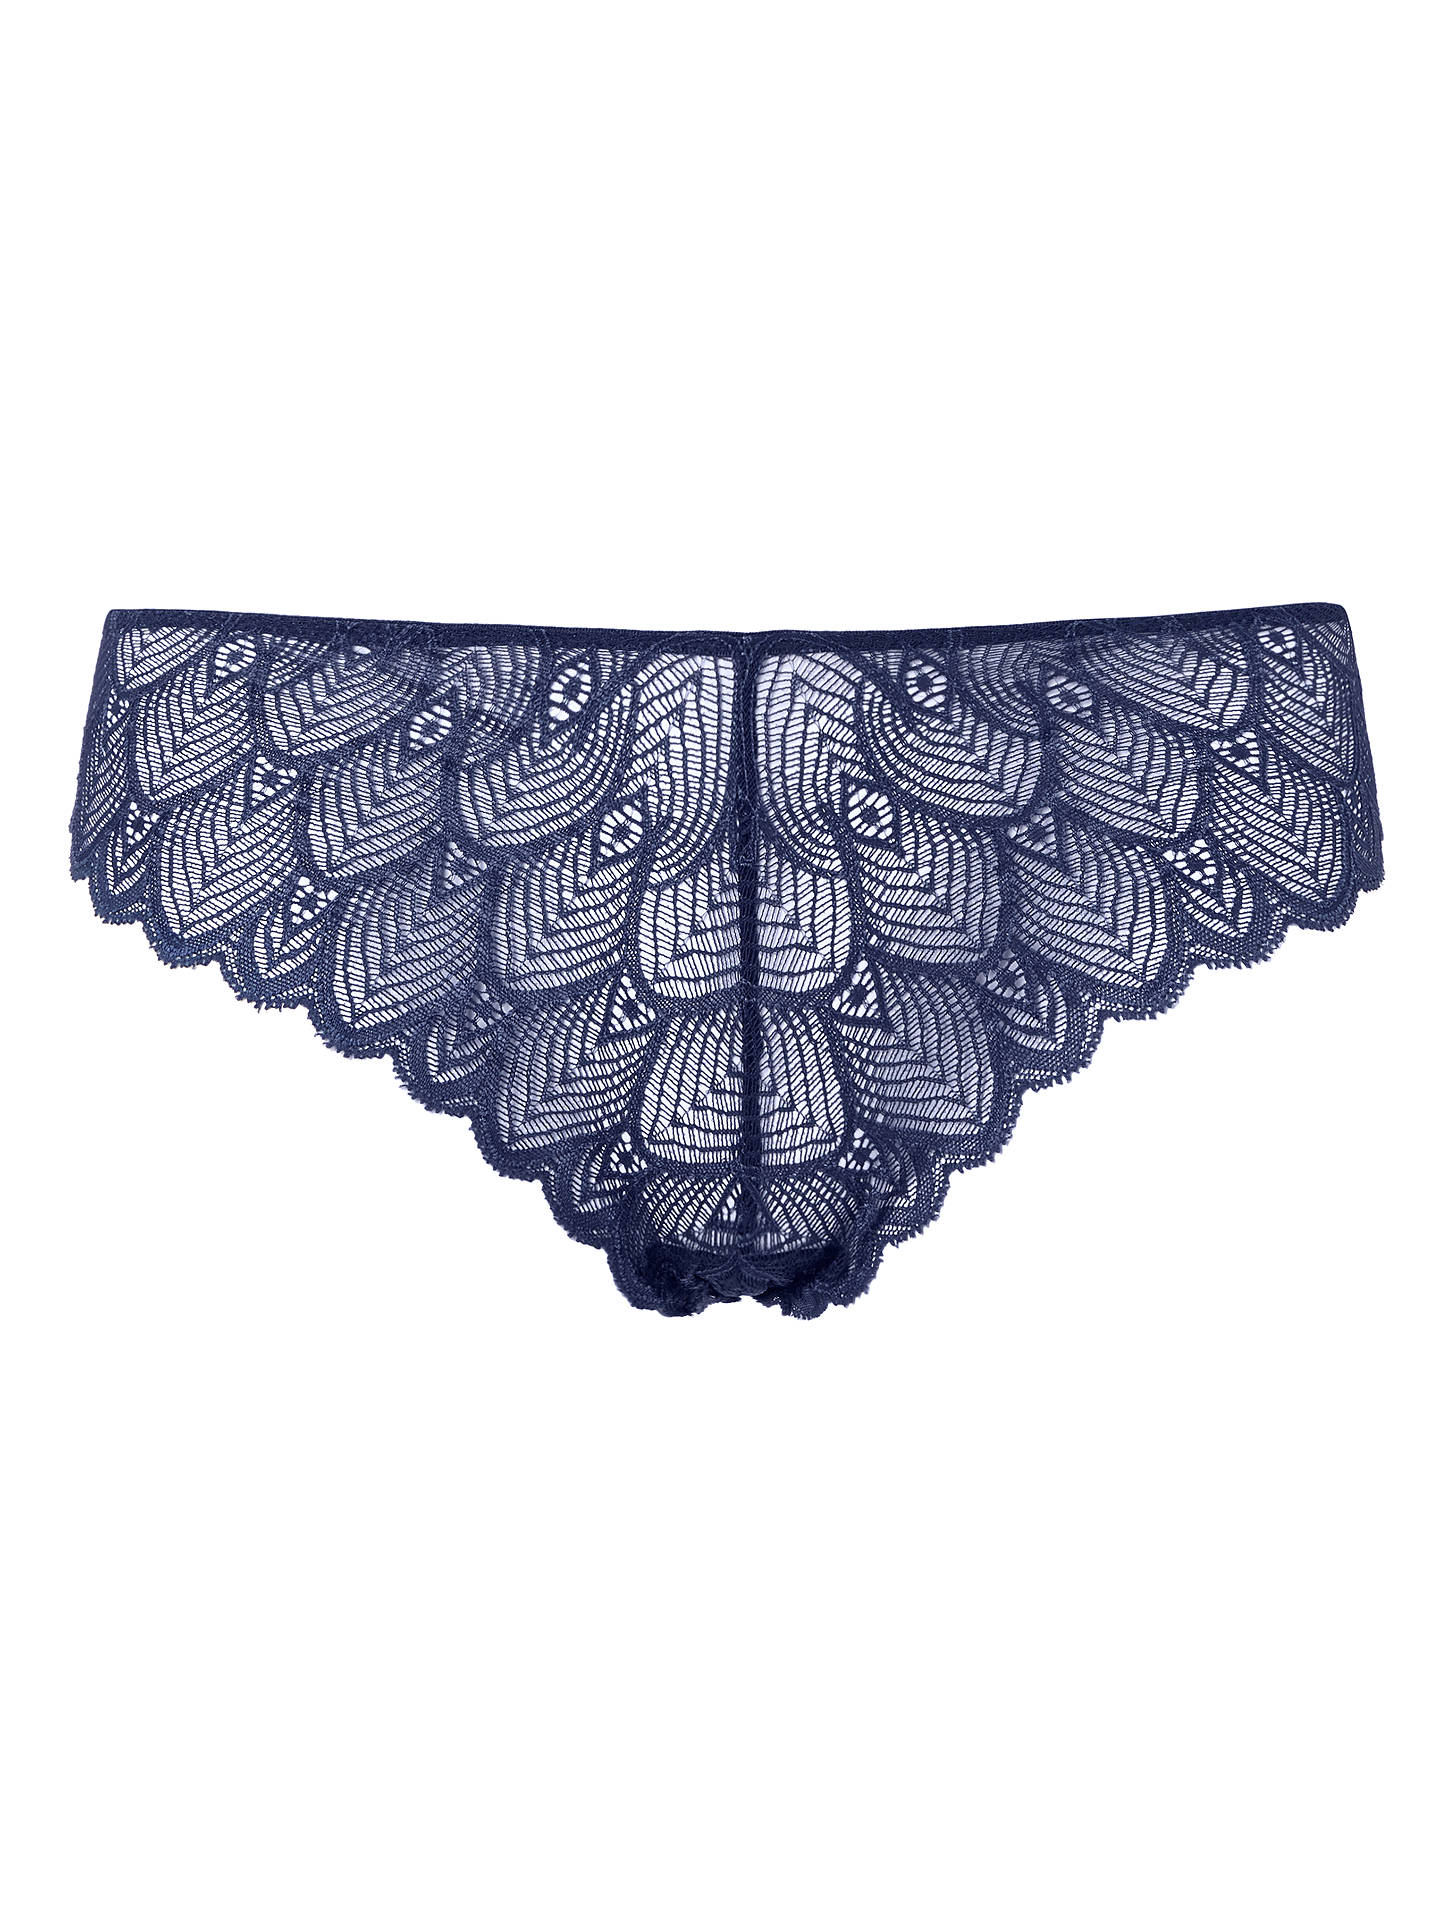 BuyJohn Lewis & Partners Eleanor Lace Briefs, Navy, 12 Online at johnlewis.com